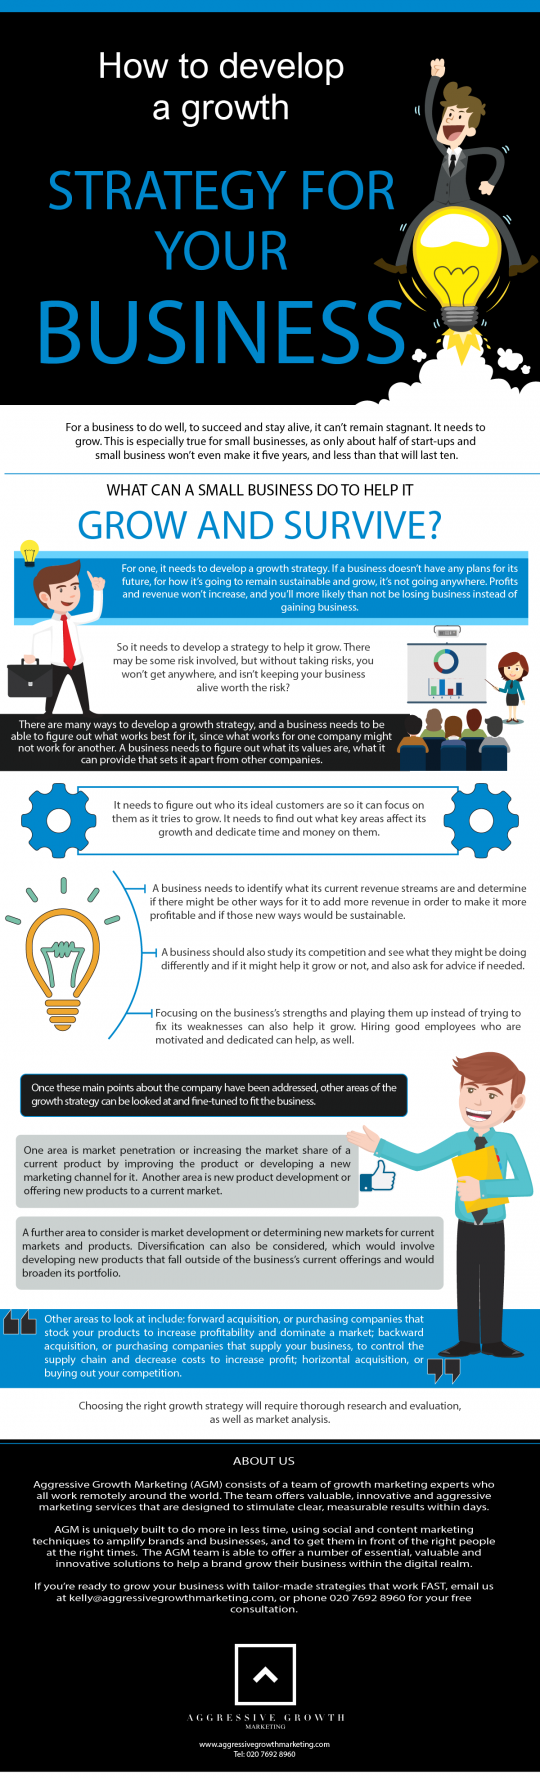 Developing Growth Strategies For Businesses Infographic